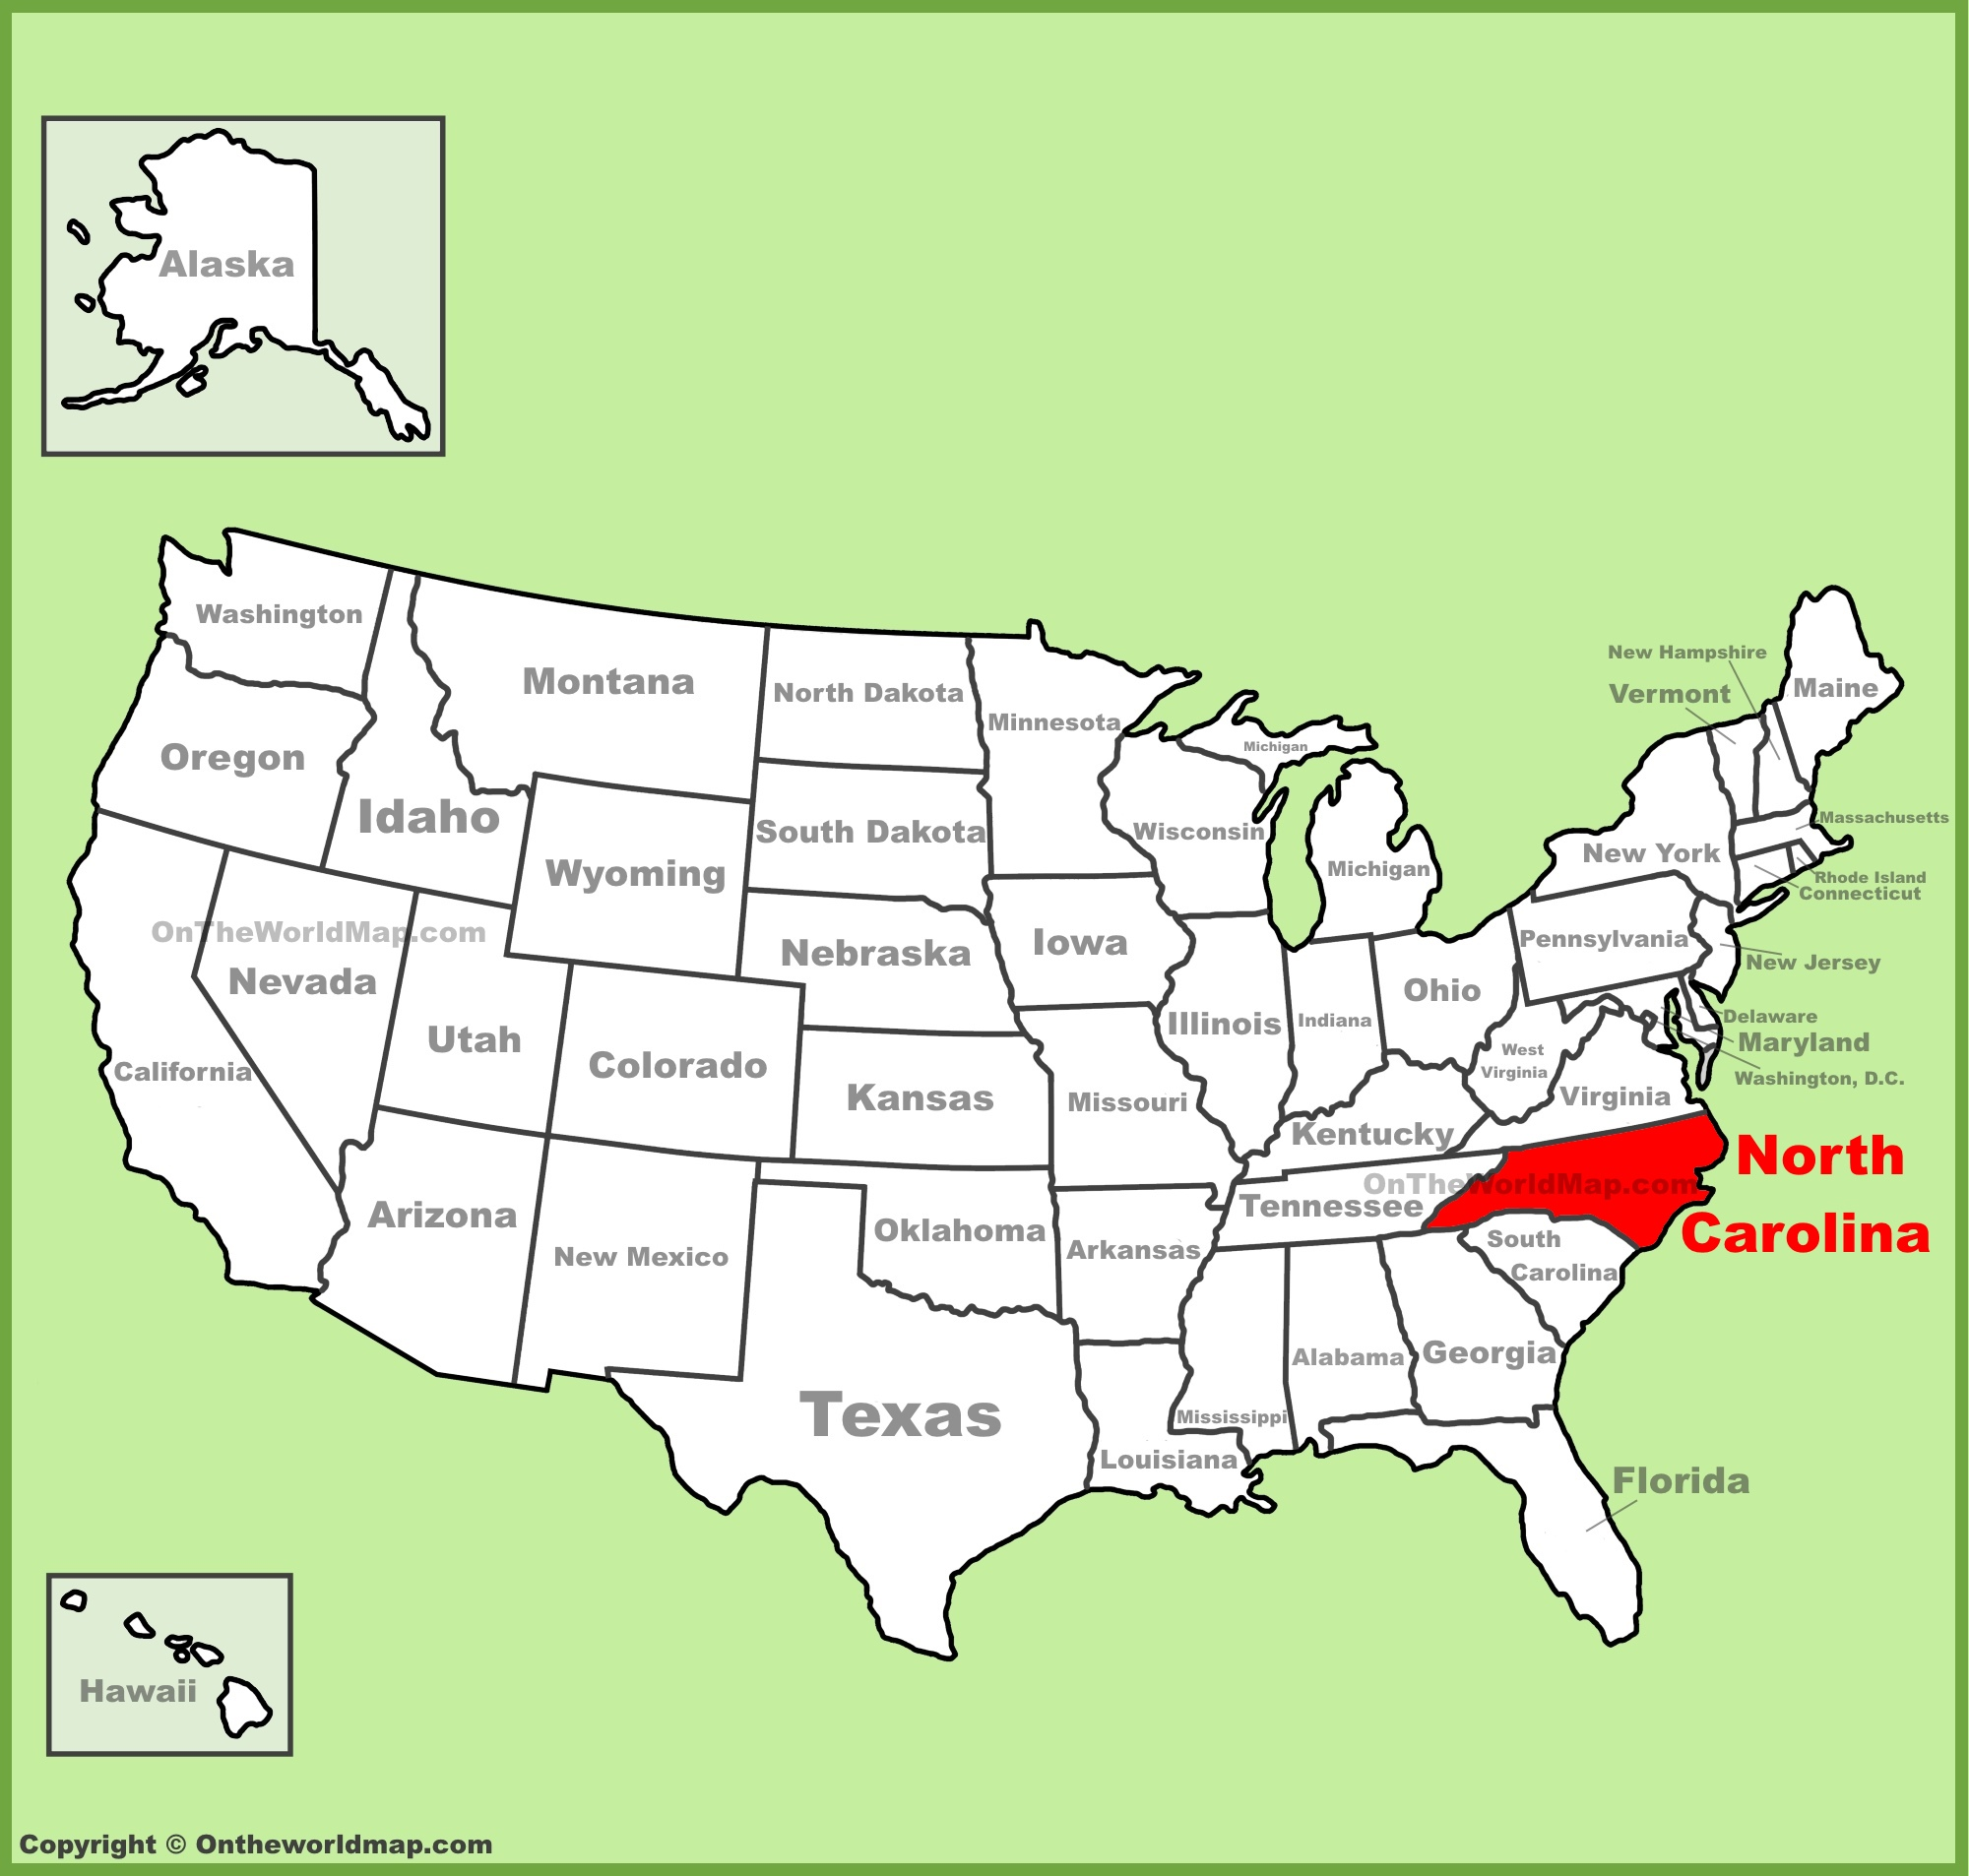 North Carolina Location On The US Map - North carolina on the us map